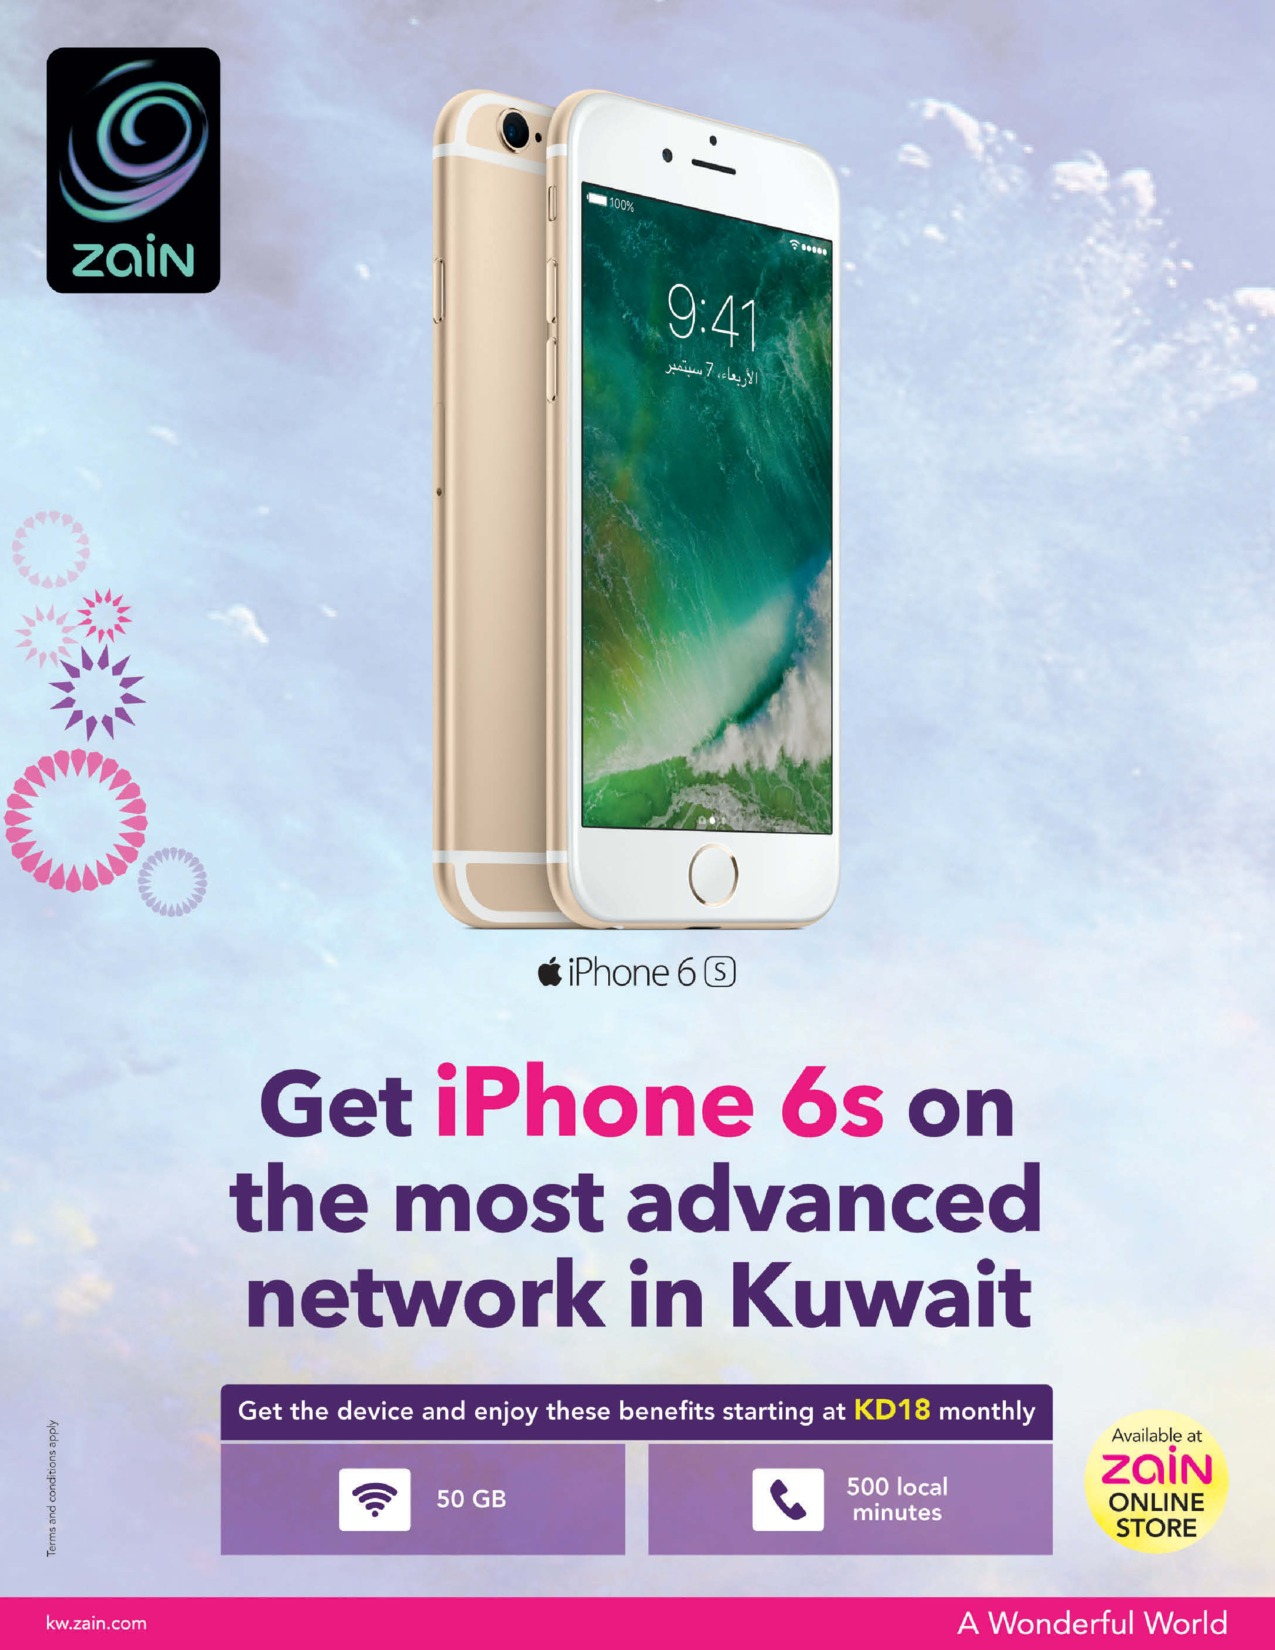 iphone-6-s-offer-from-zain-kuwait